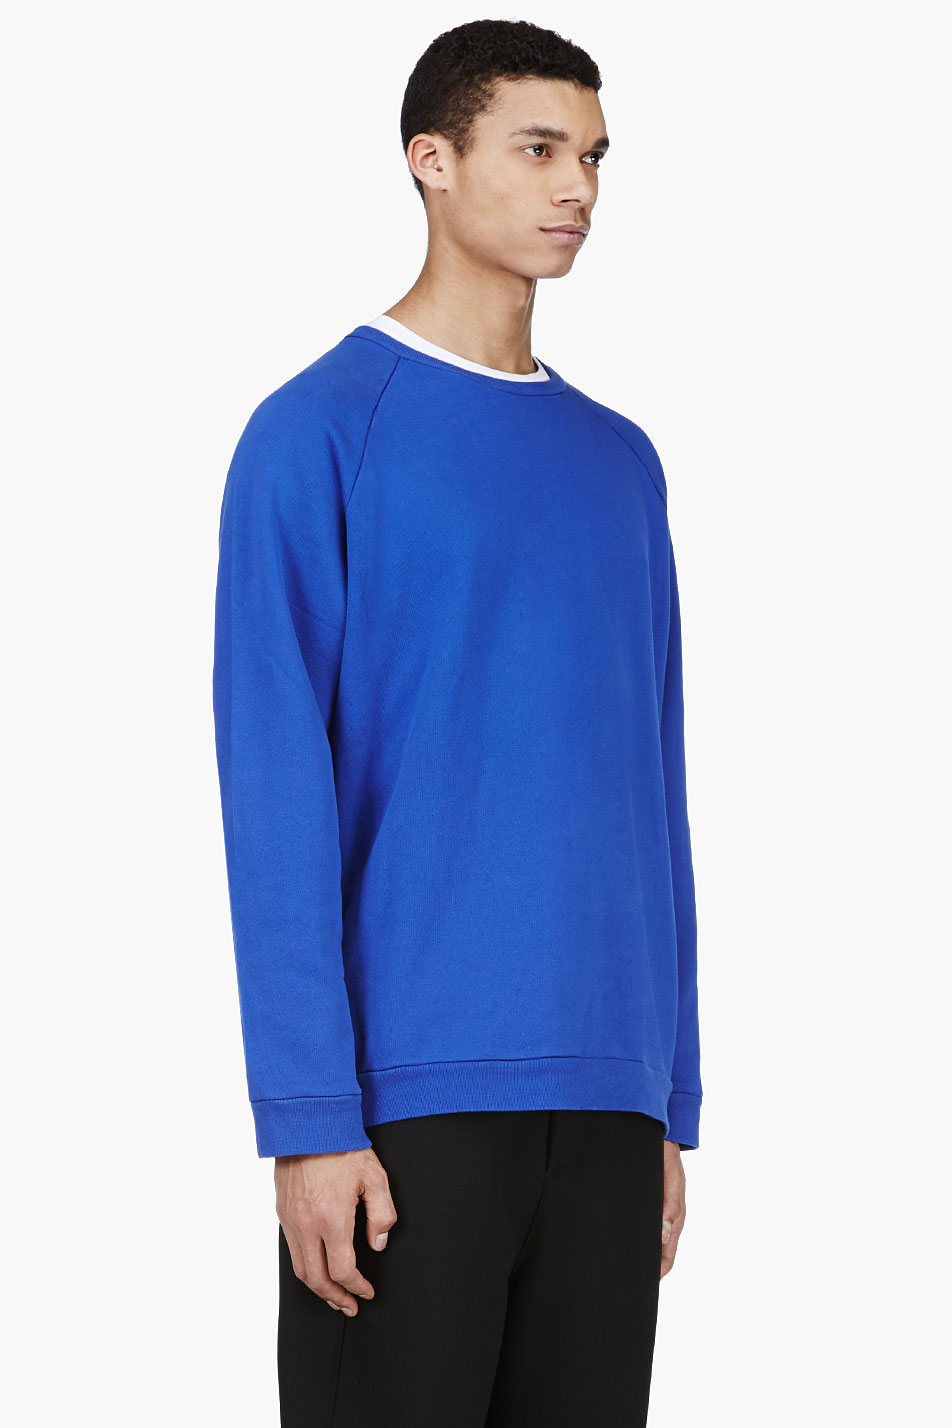 0aeb27eacc Acne Studios Blue Oversized Crewneck Sweater in Blue for Men - Lyst